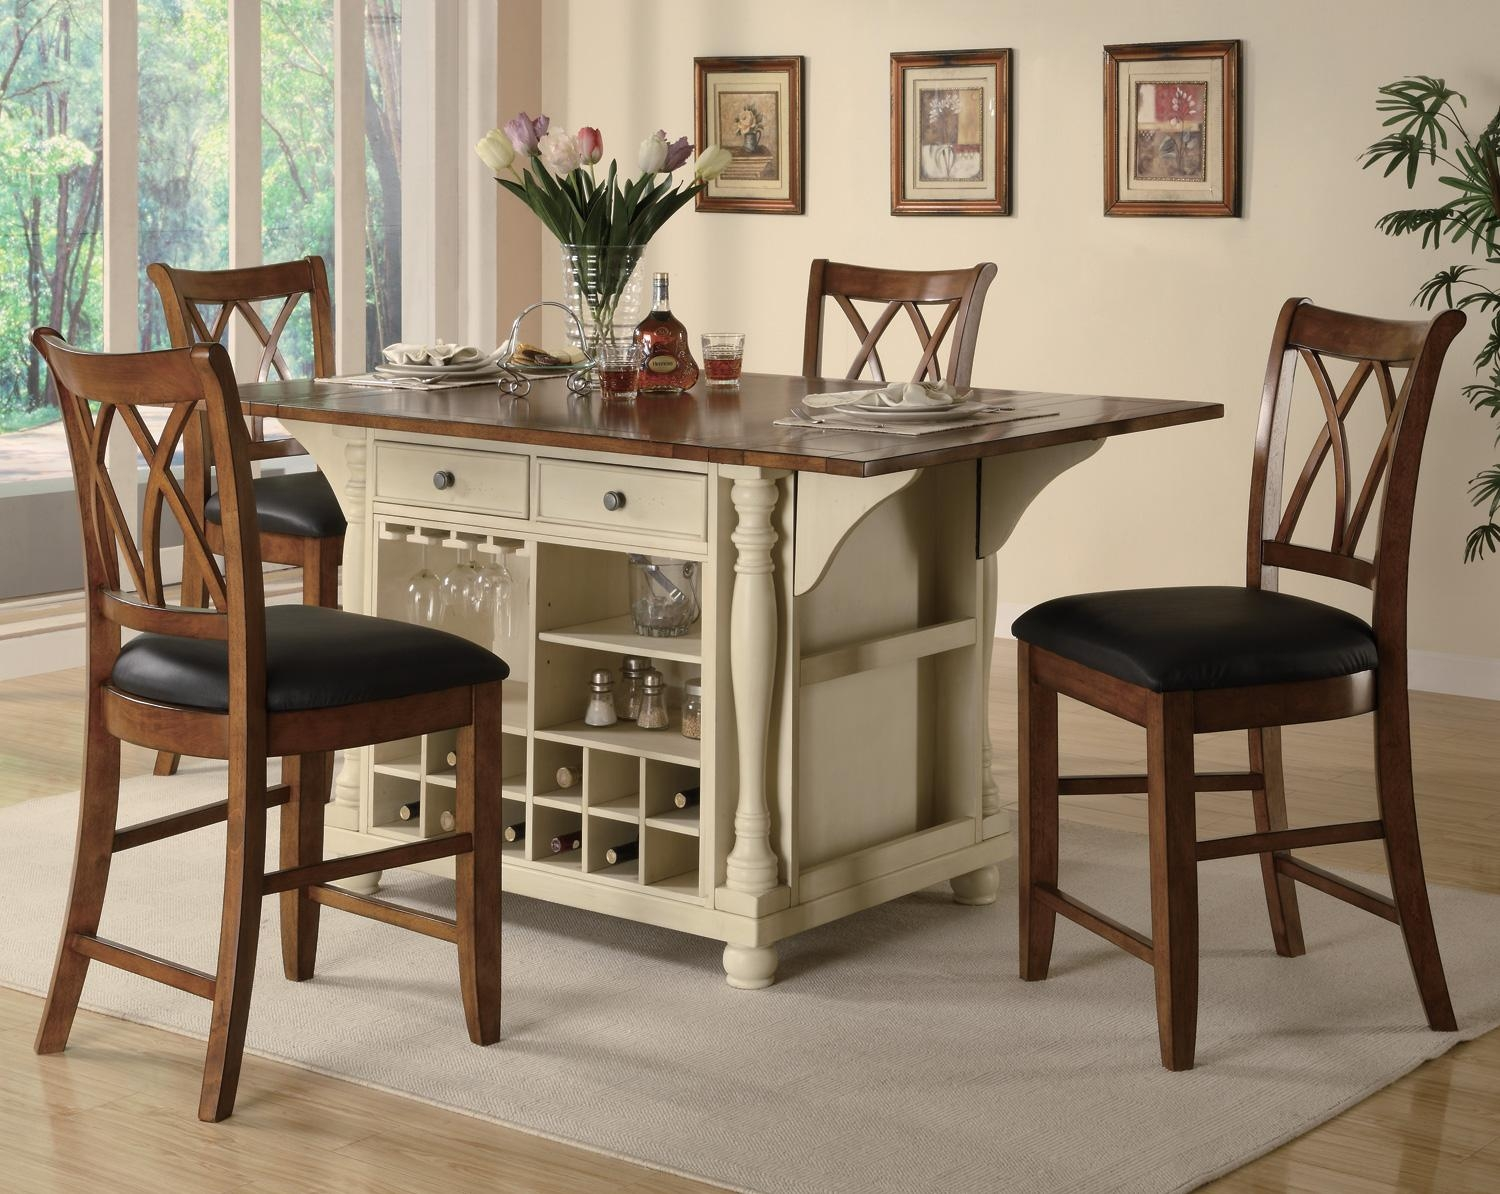 Counter High Kitchen Sets